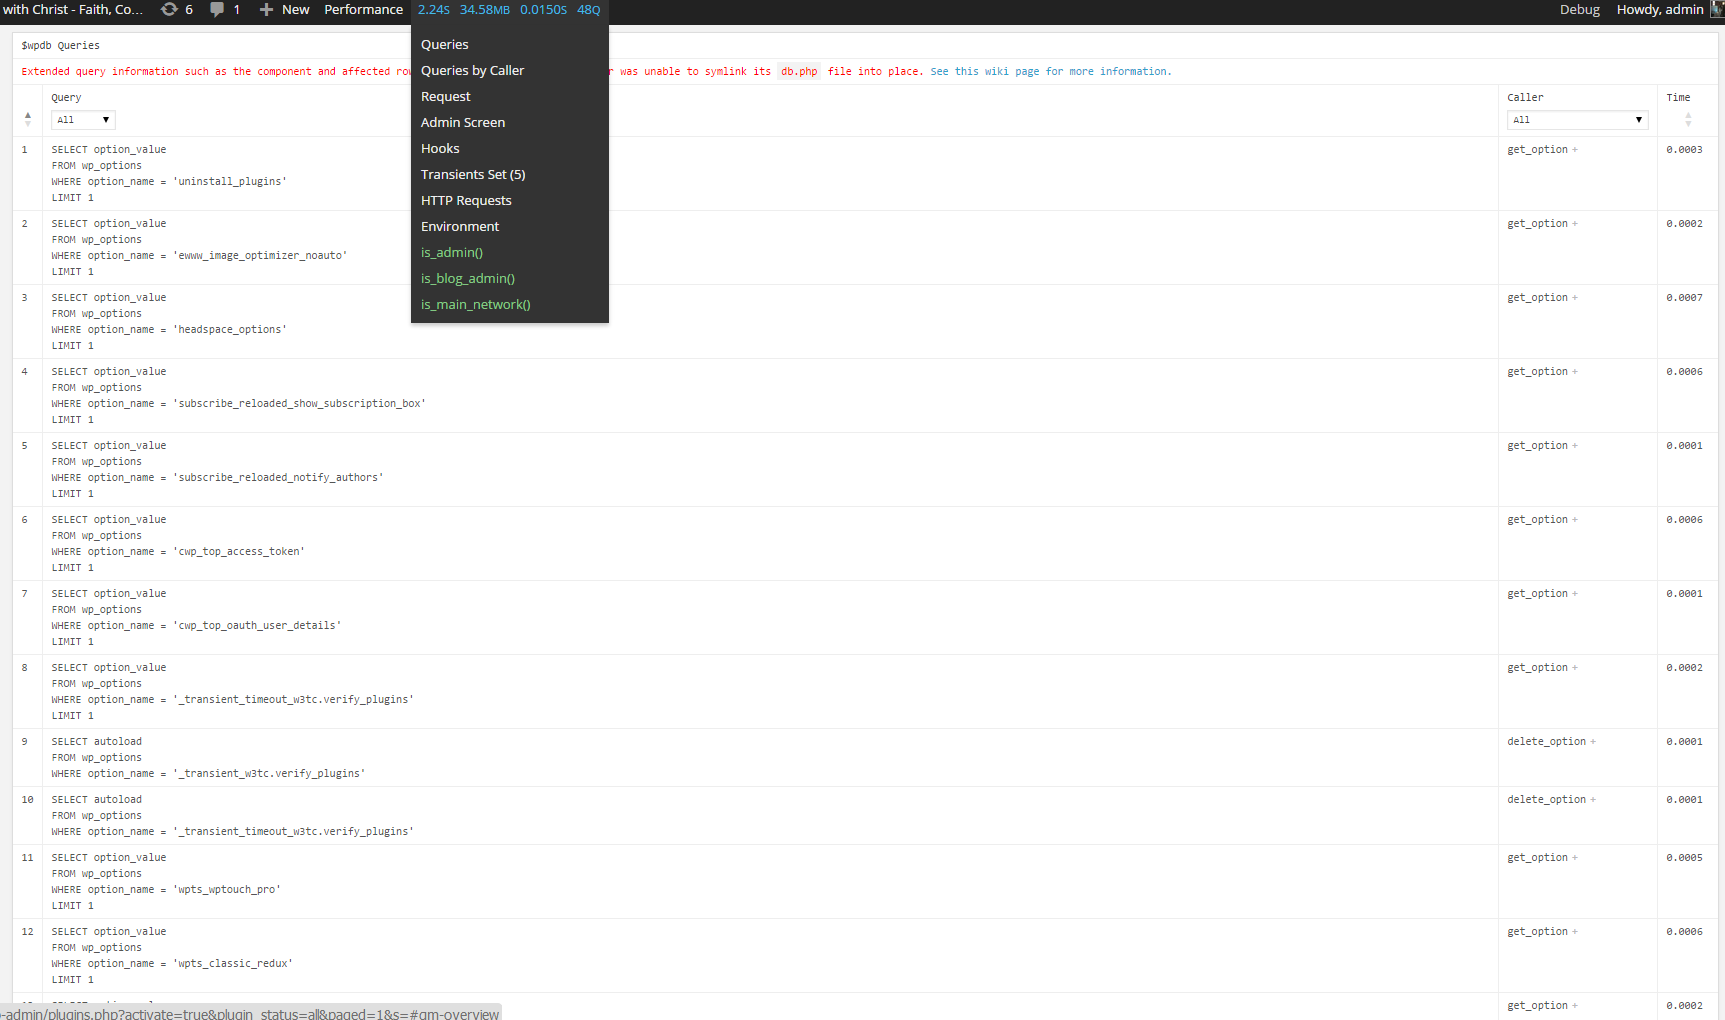 wordpress-query-monitor-plugin-to-monitor-track-and-optimize-problems-with-sql-caused-by-wp-plugins.png